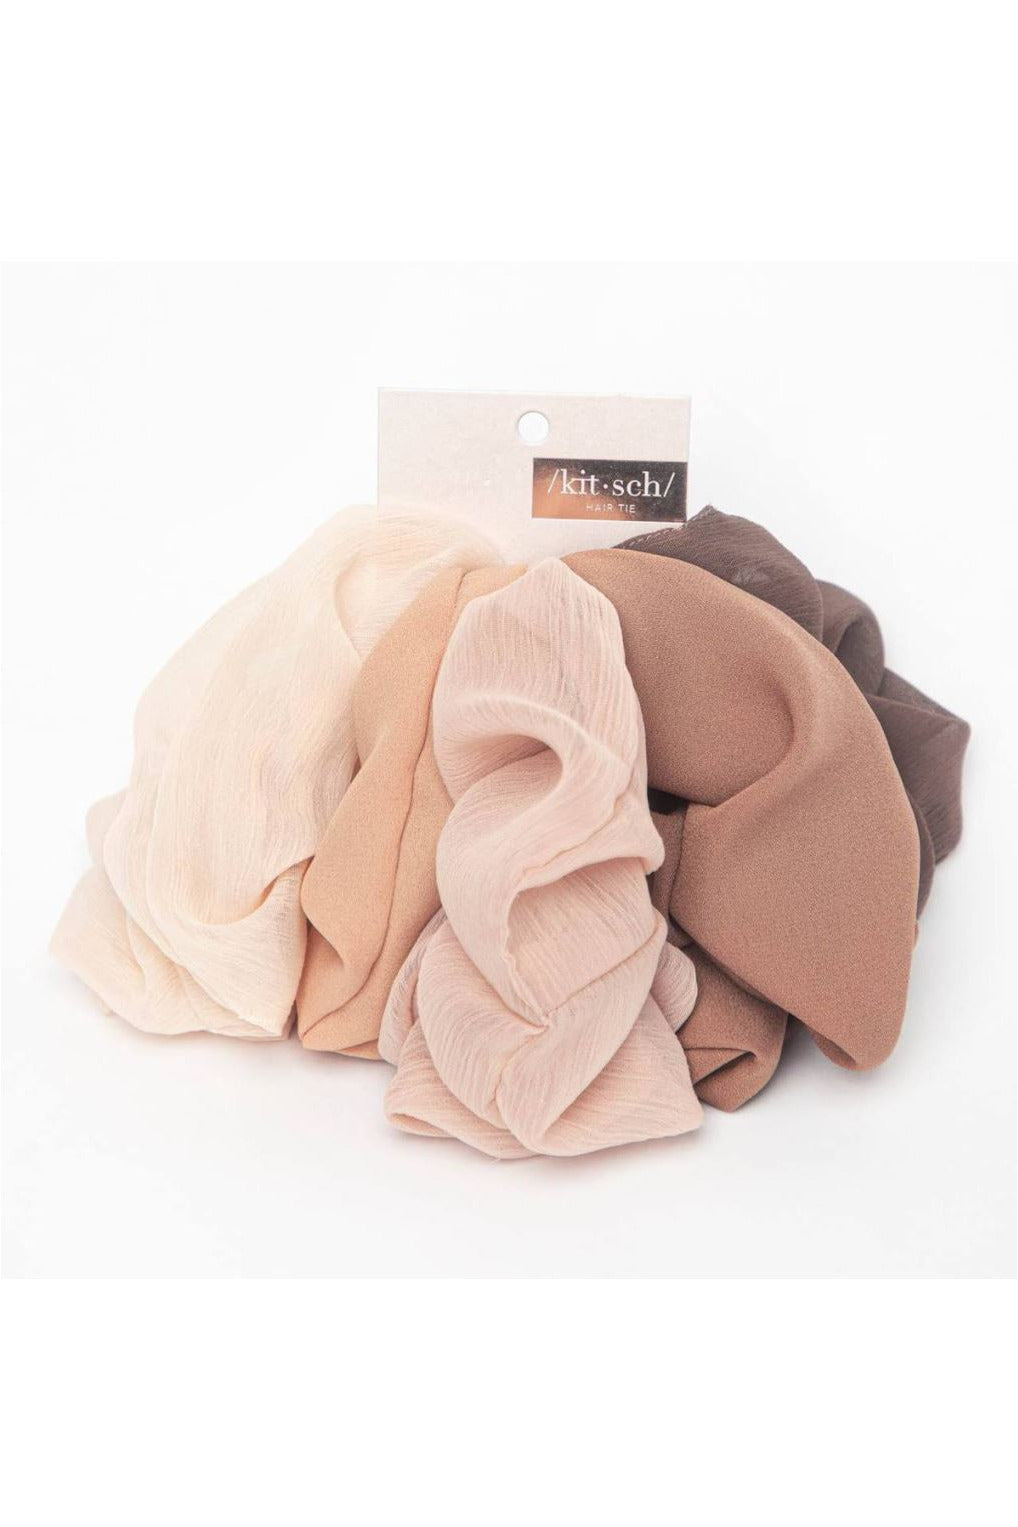 Kitsch Crepe Scrunchies 5pc - BluePeppermint Boutique